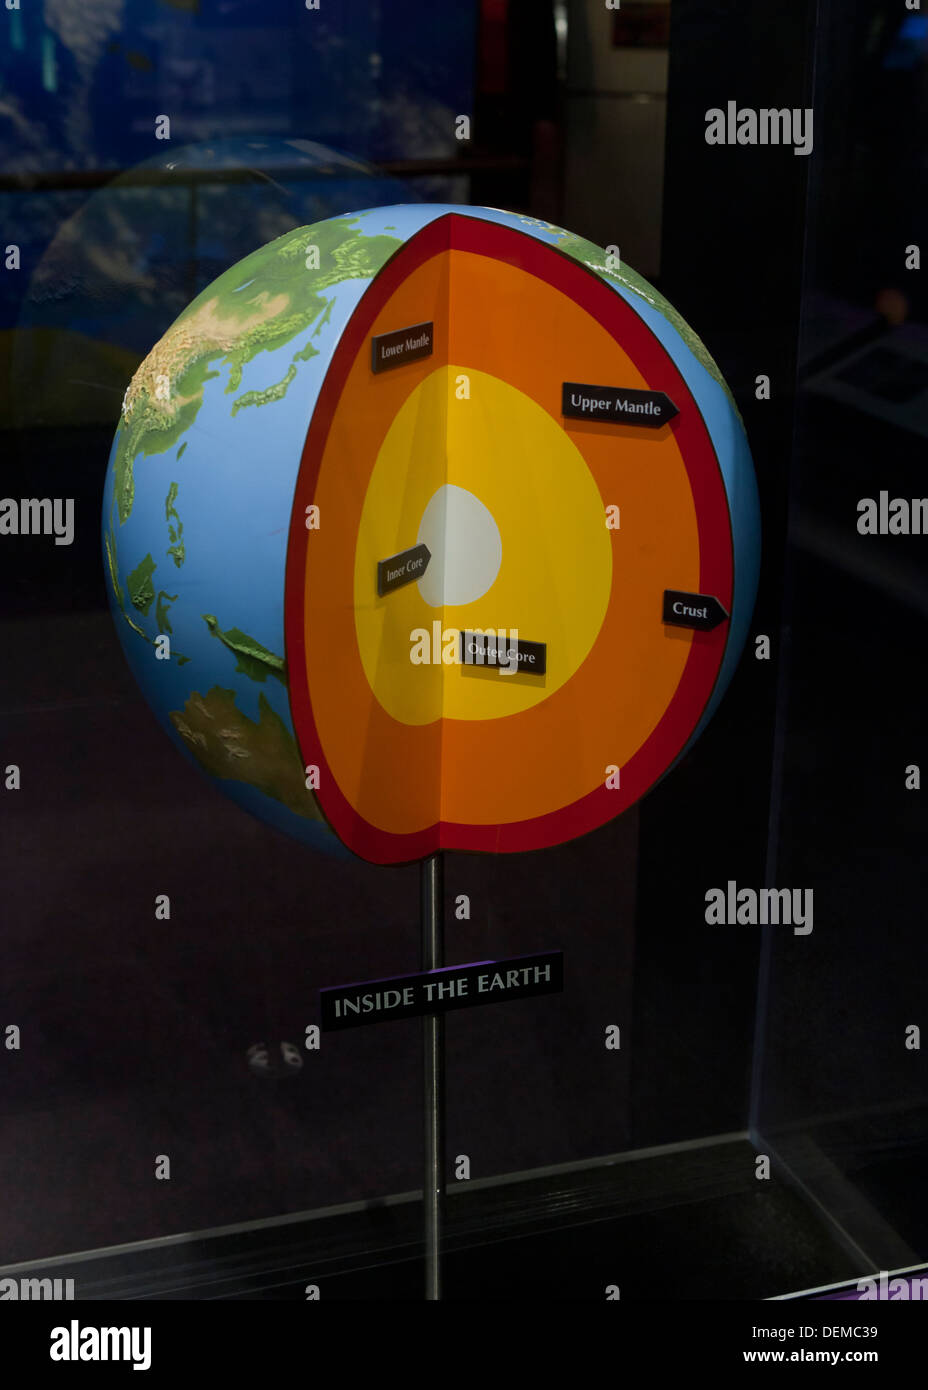 Layers of earth stock photos layers of earth stock images alamy layers of the earth cutaway display at science museum stock image ccuart Images